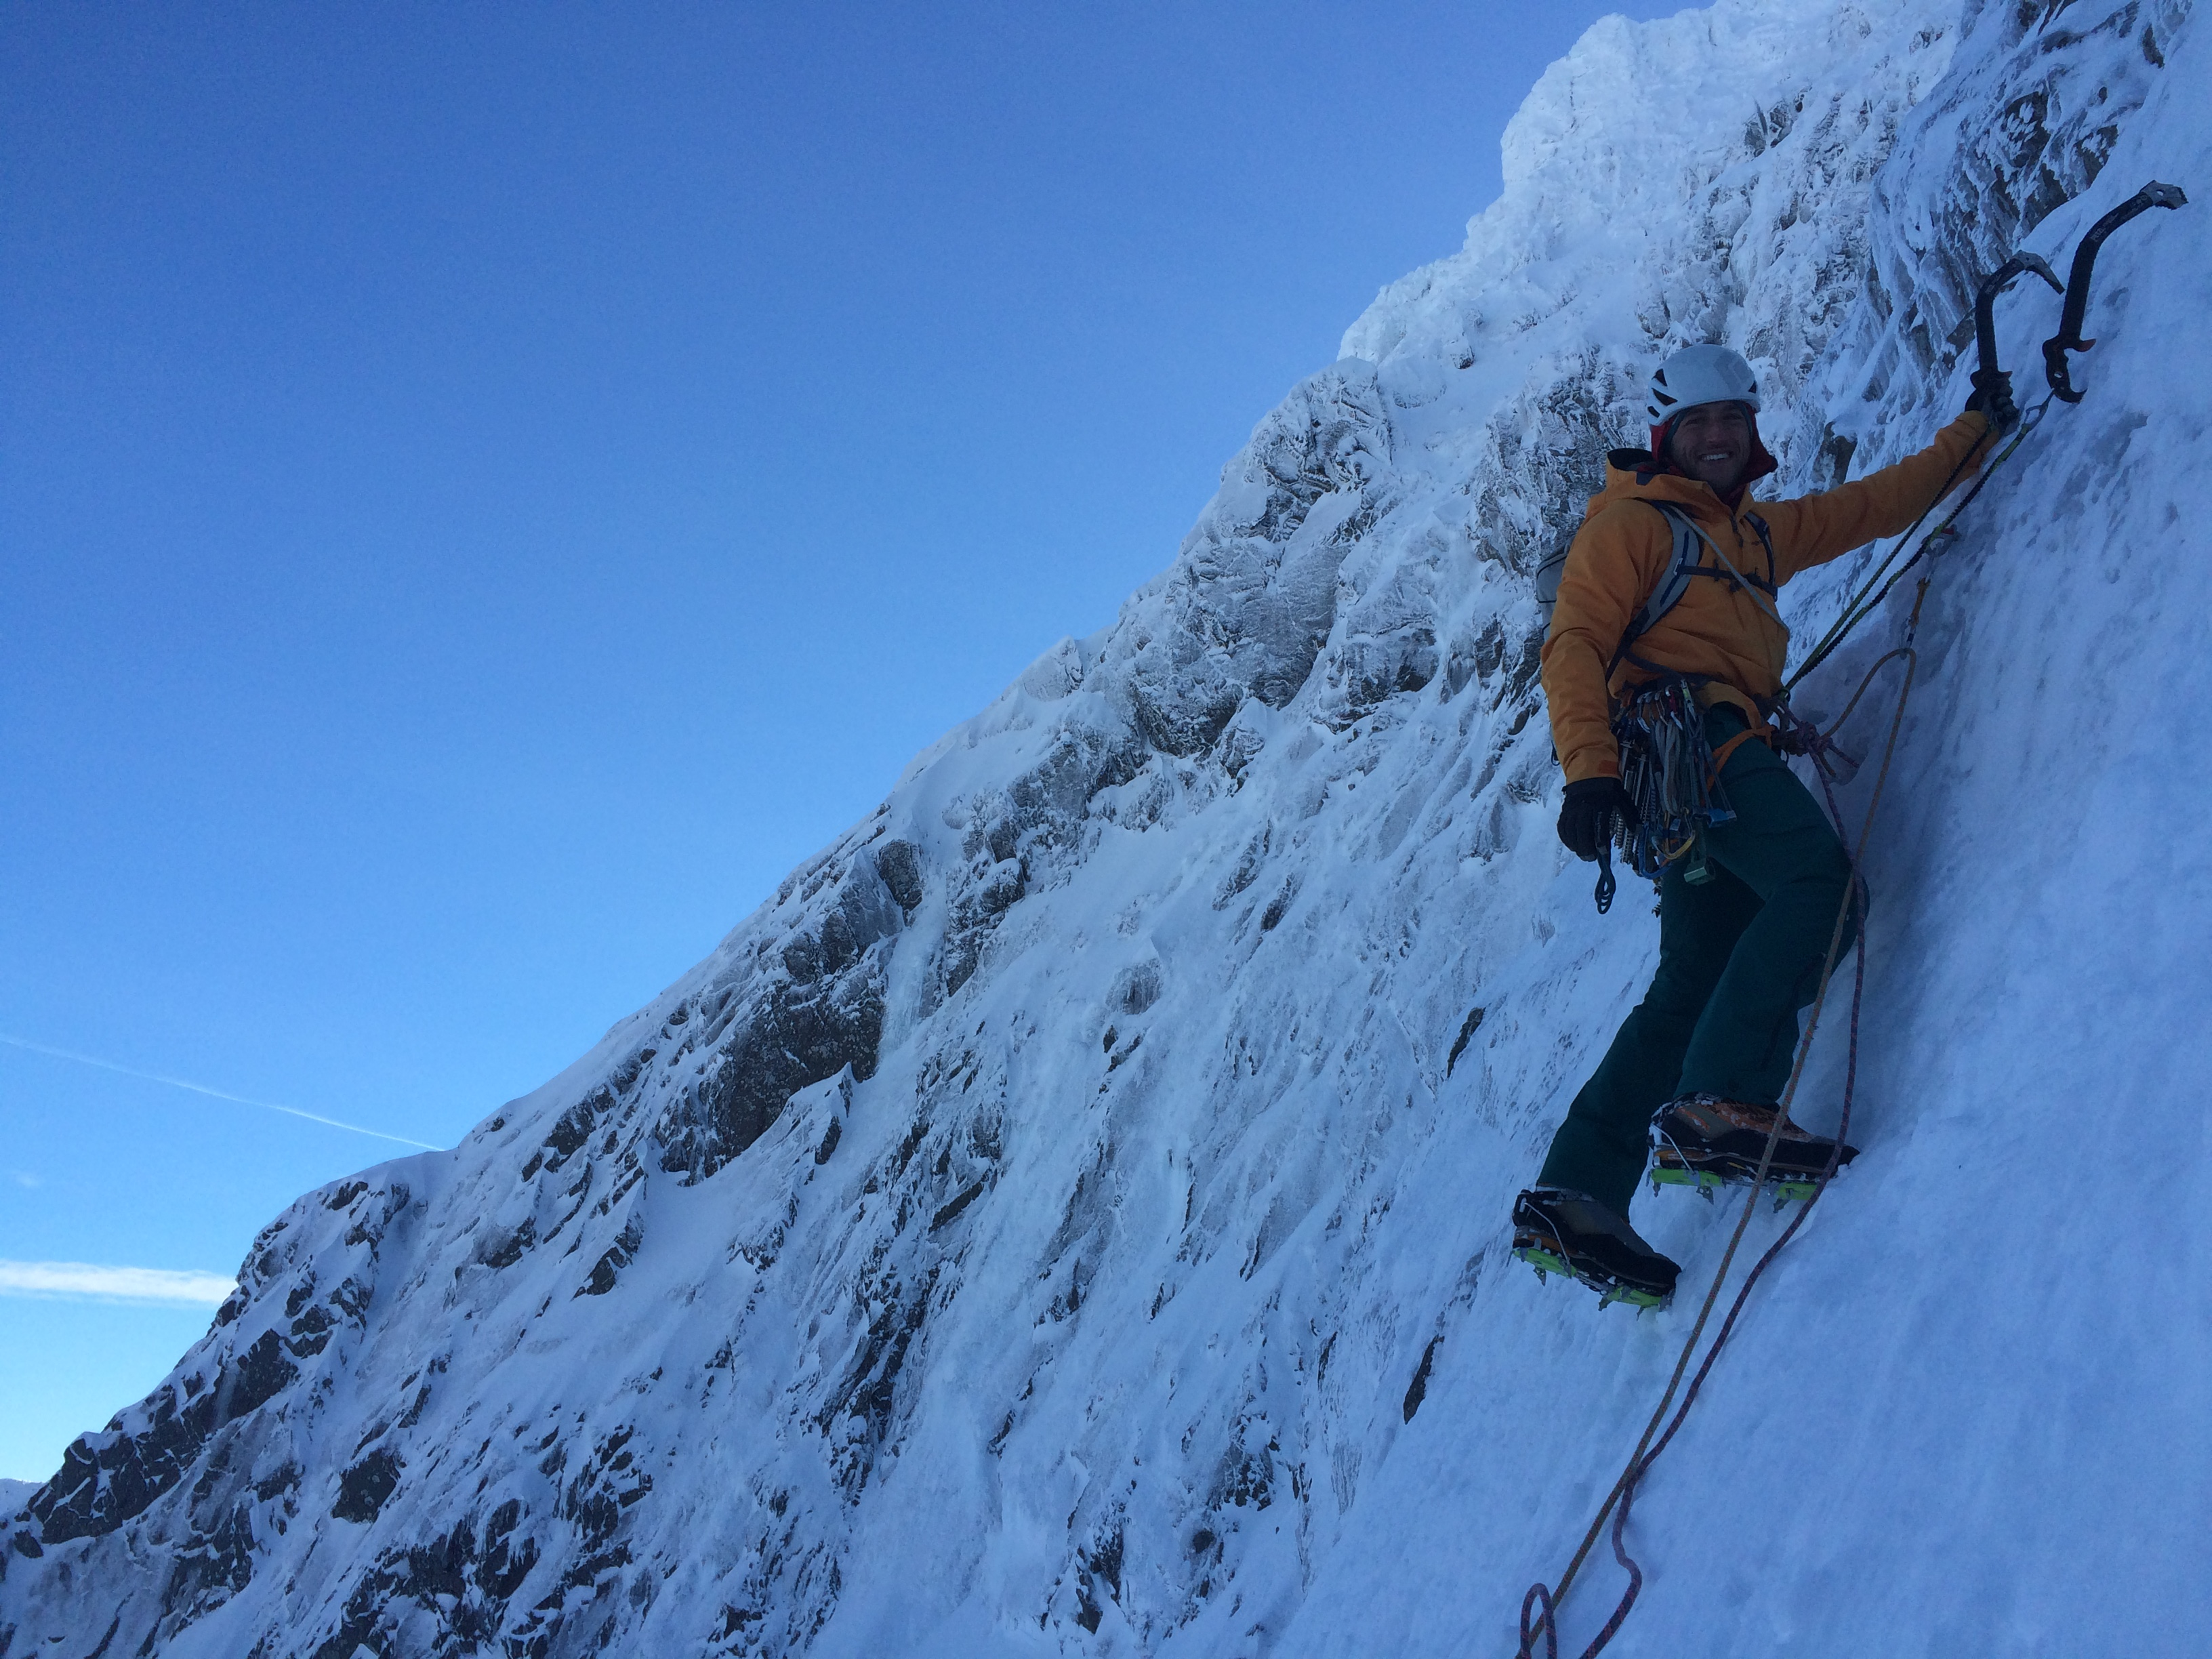 Hire a Winter Climbing Guide on Ben Nevis with Lochaber Guides, Ben Nevis Winter Climbing, Glencoe Winter Climbing, Mountain Guide